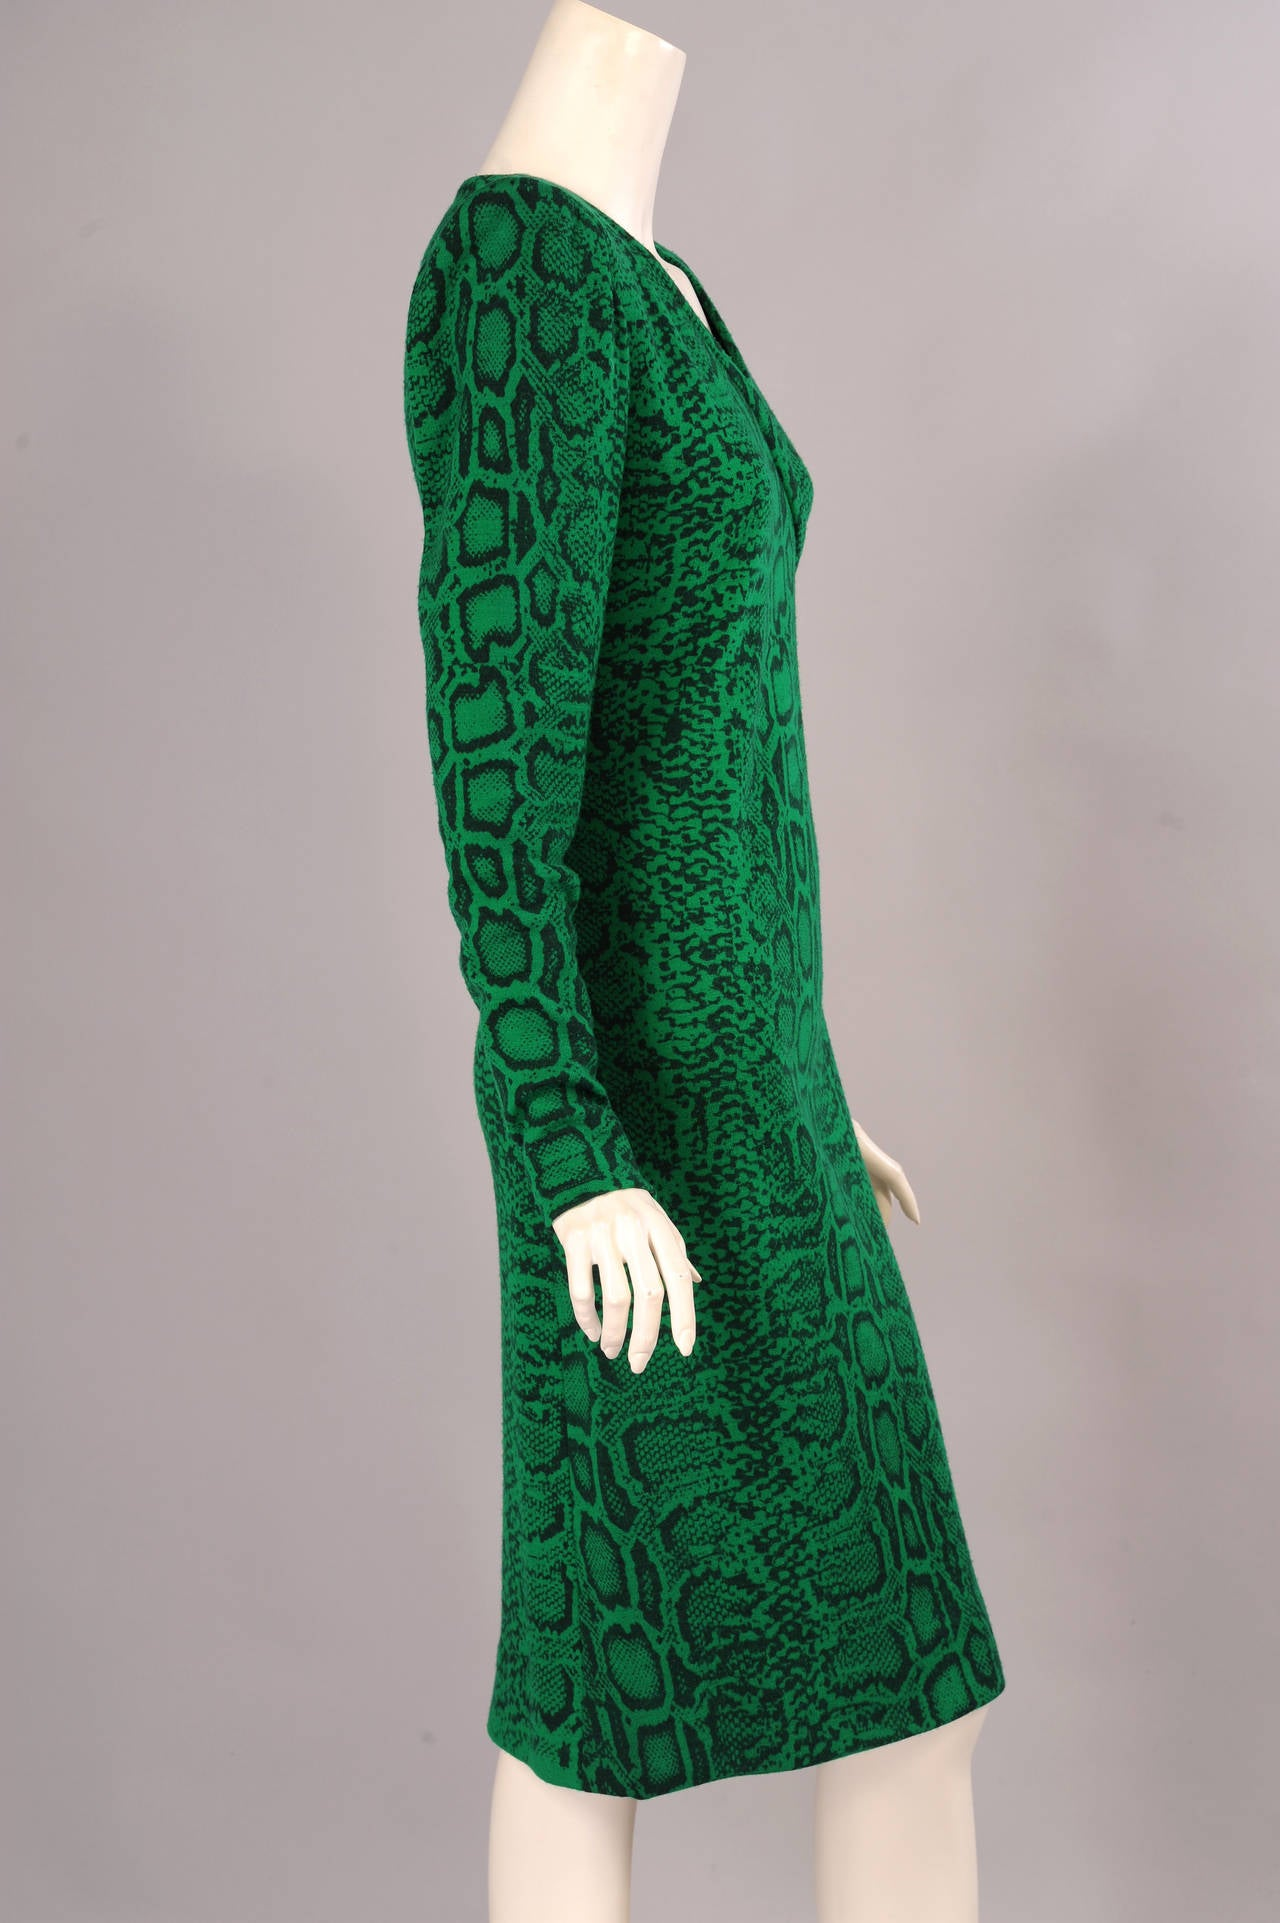 Blue Givenchy Haute Couture Kelly Green Snakeskin Print Wool Dress, Runway Label For Sale